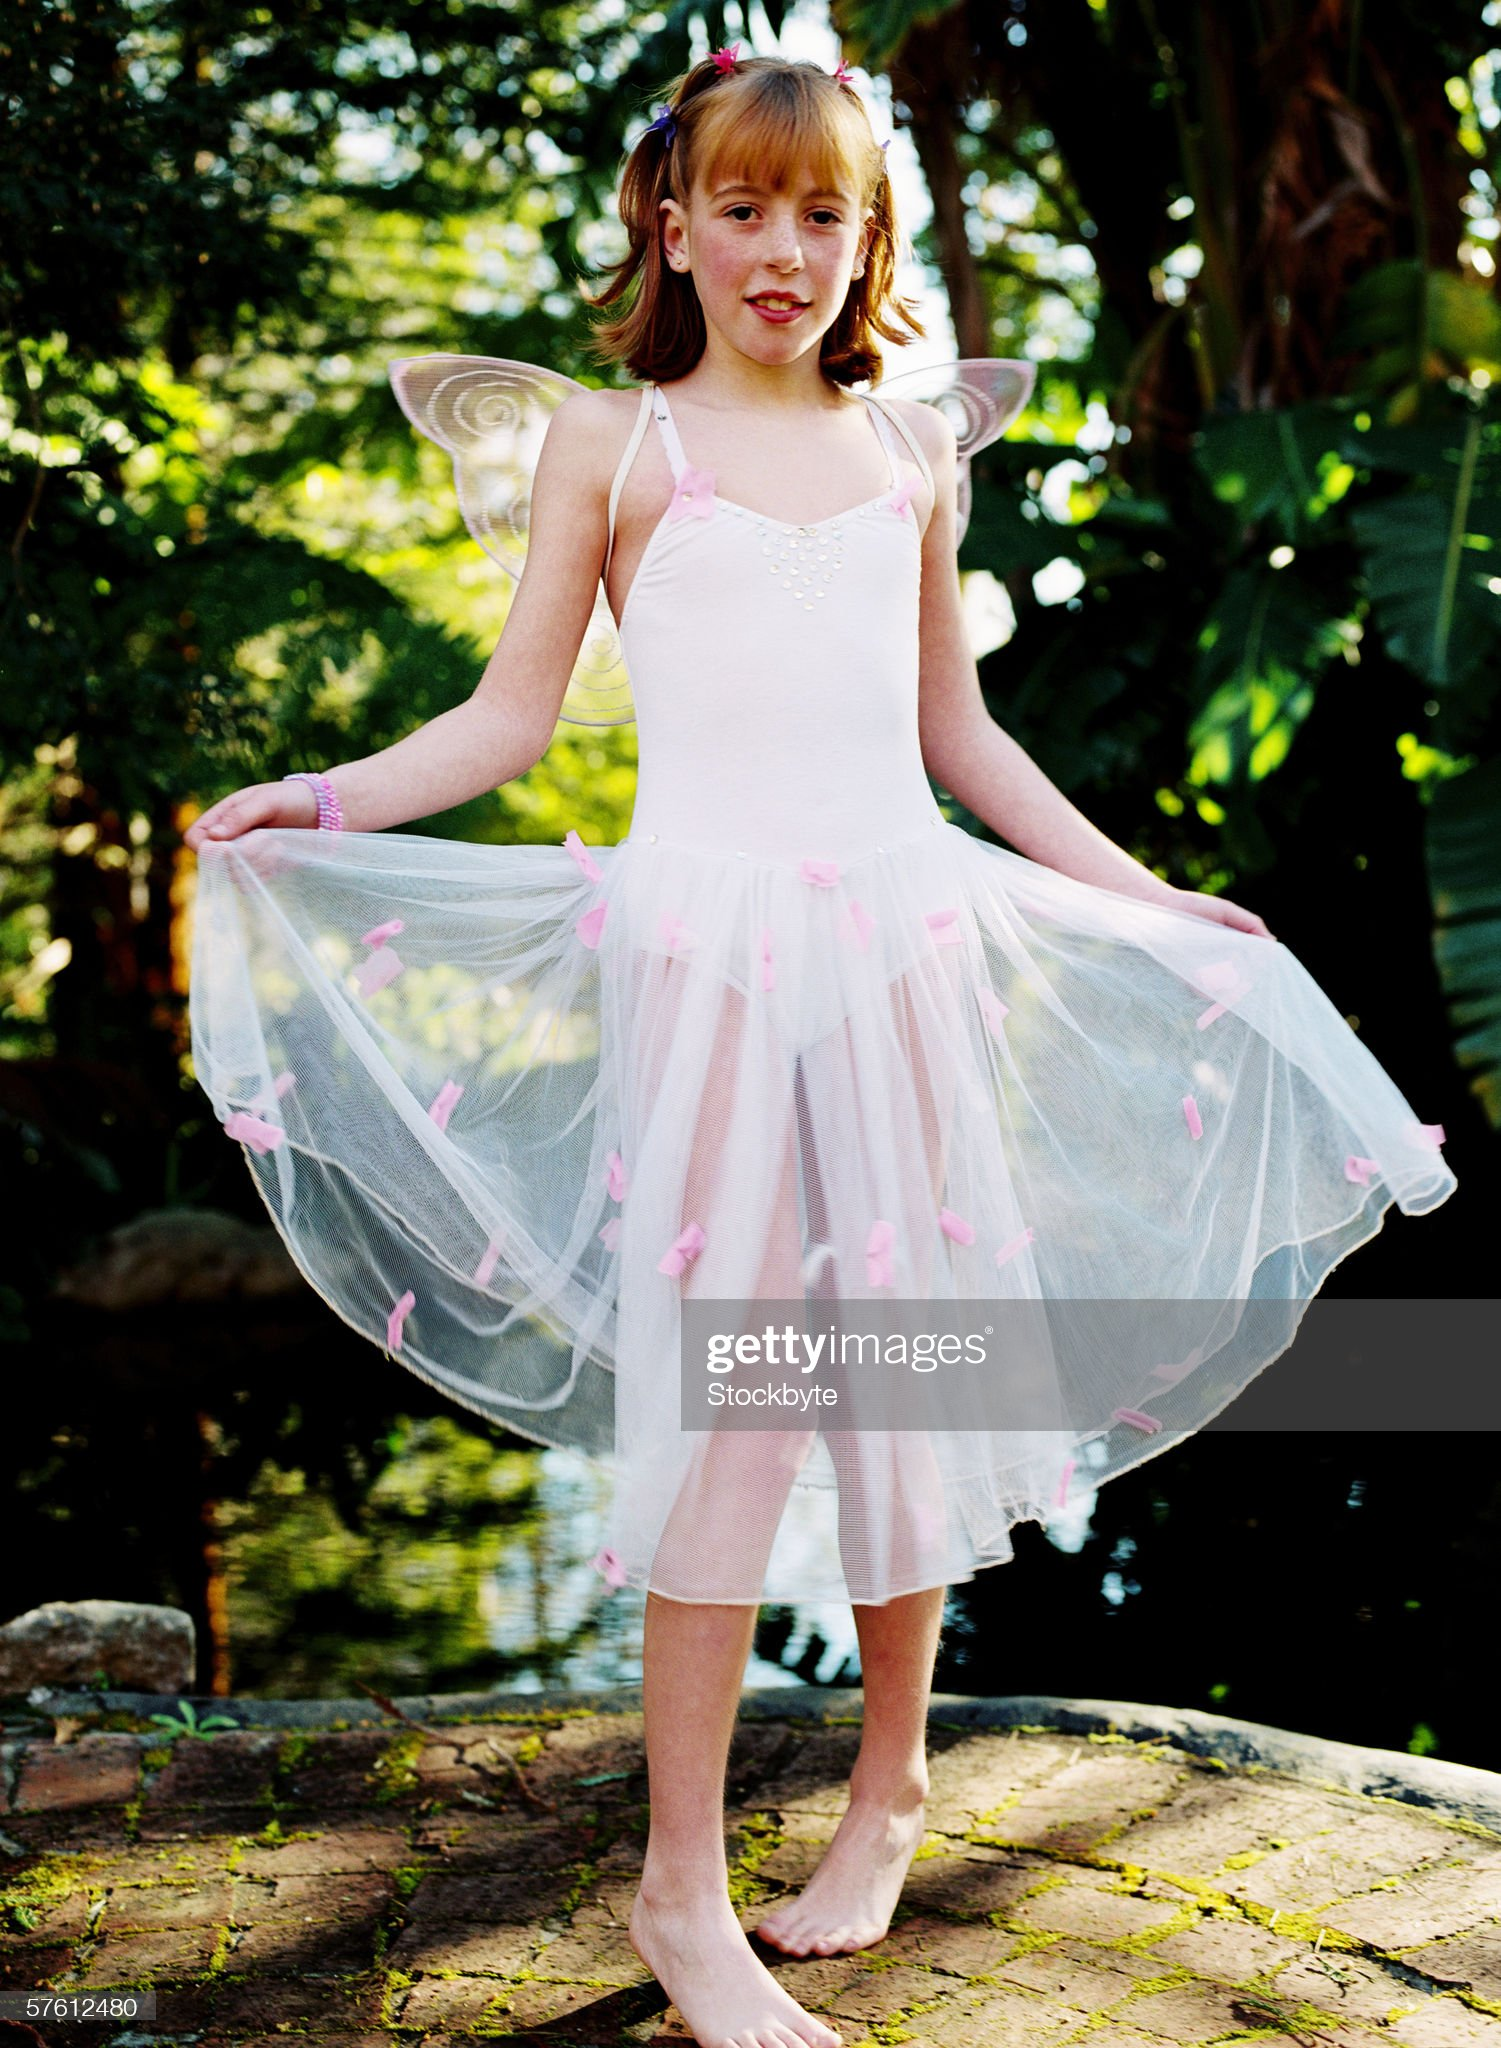 https://media.gettyimages.com/photos/portrait-of-a-young-girl-wearing-a-fairy-costume-picture-id57612480?s=2048x2048